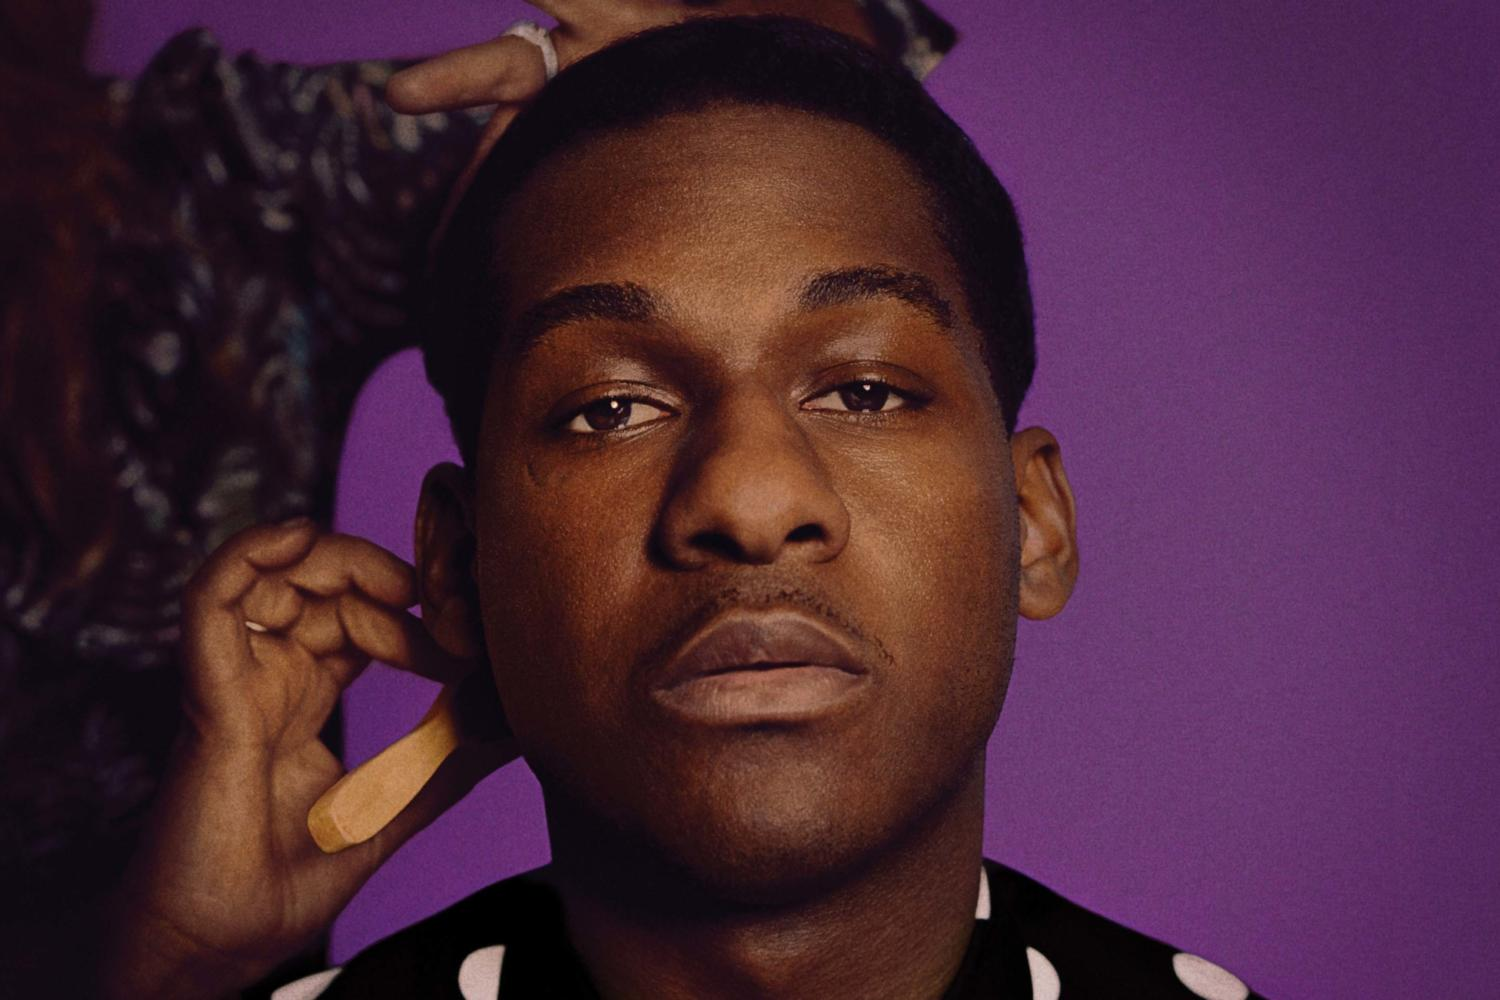 Leon Bridges shares 'Bet Ain't Worth The Hand' and 'Bad Bad News'